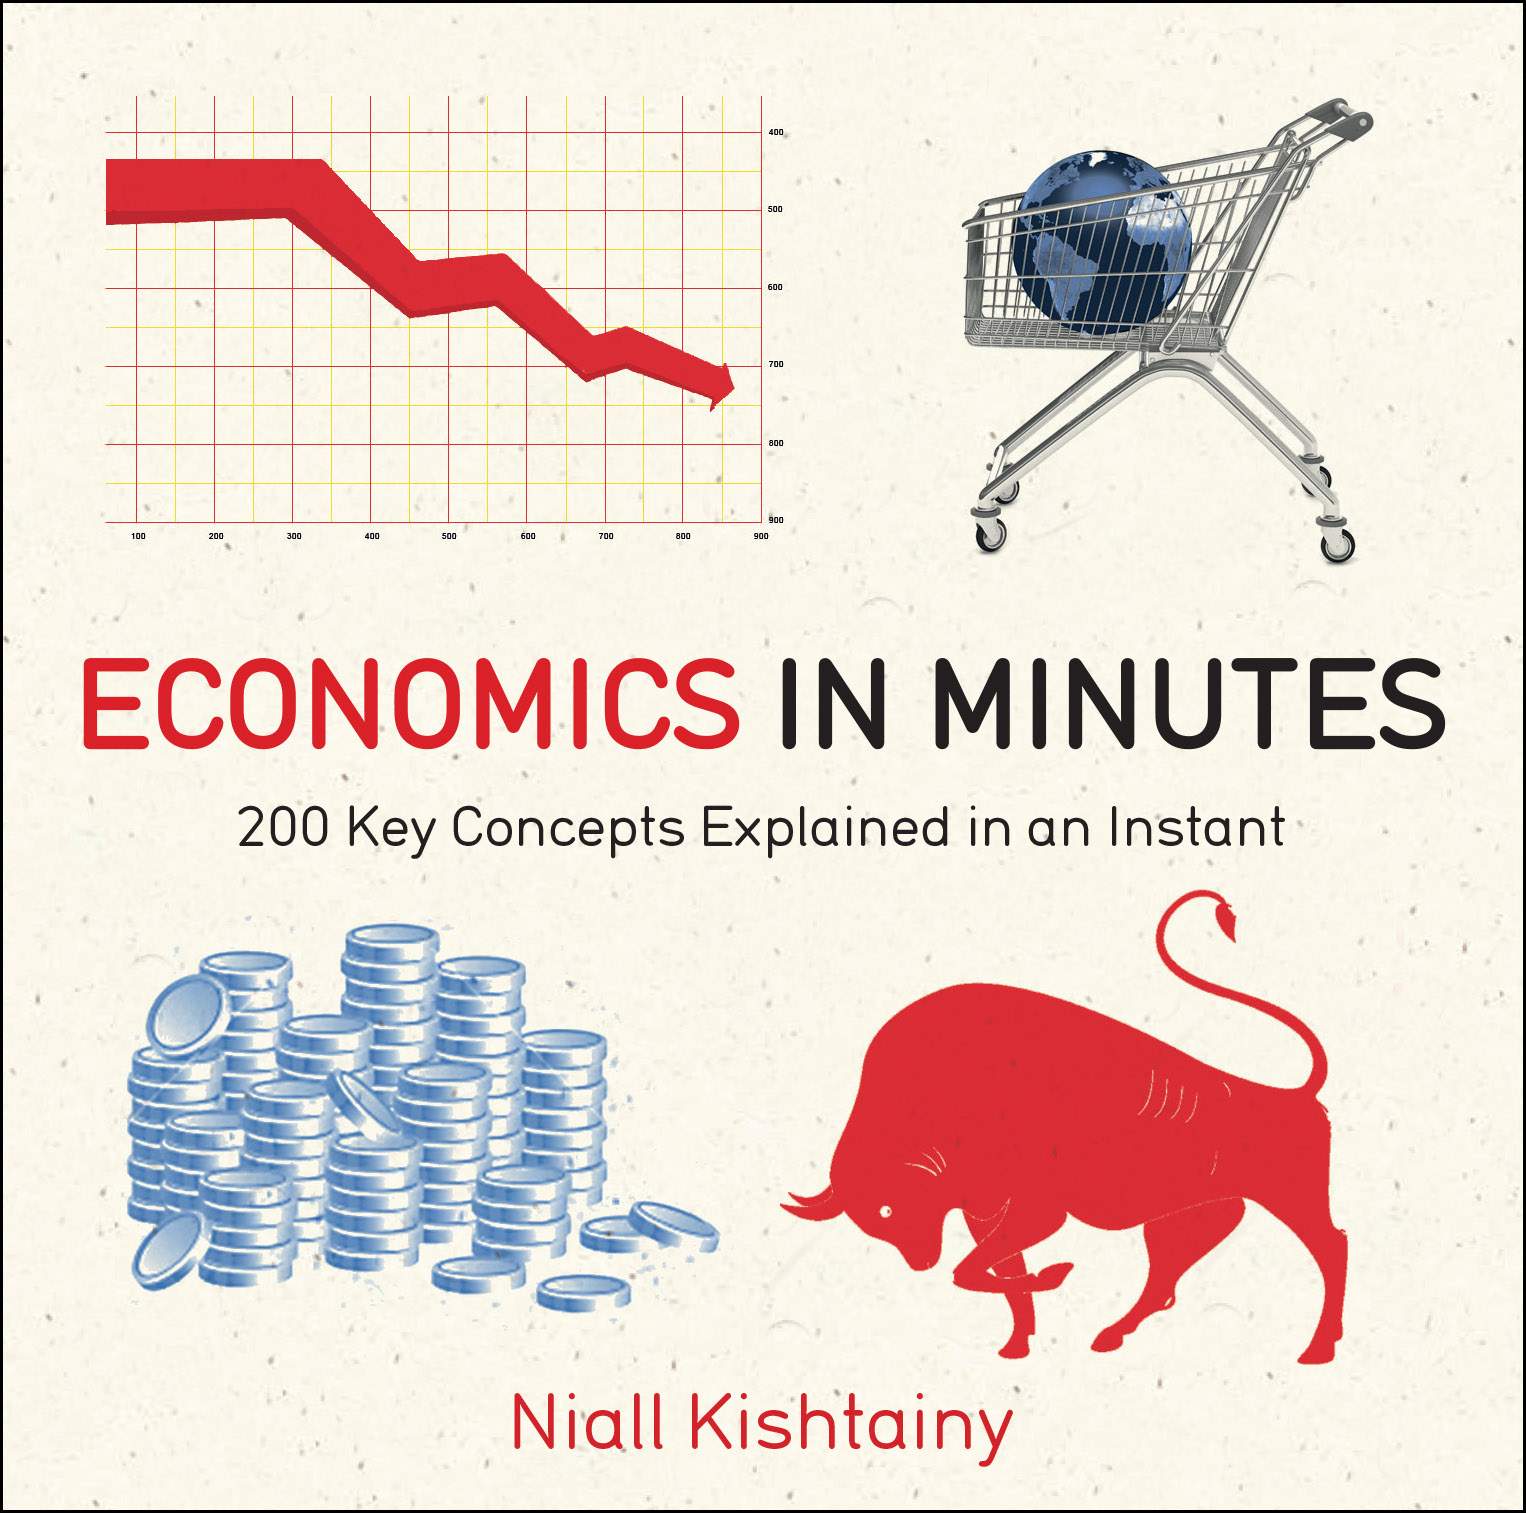 Economics in Minutes 200 Key Concepts Explained in an Instant